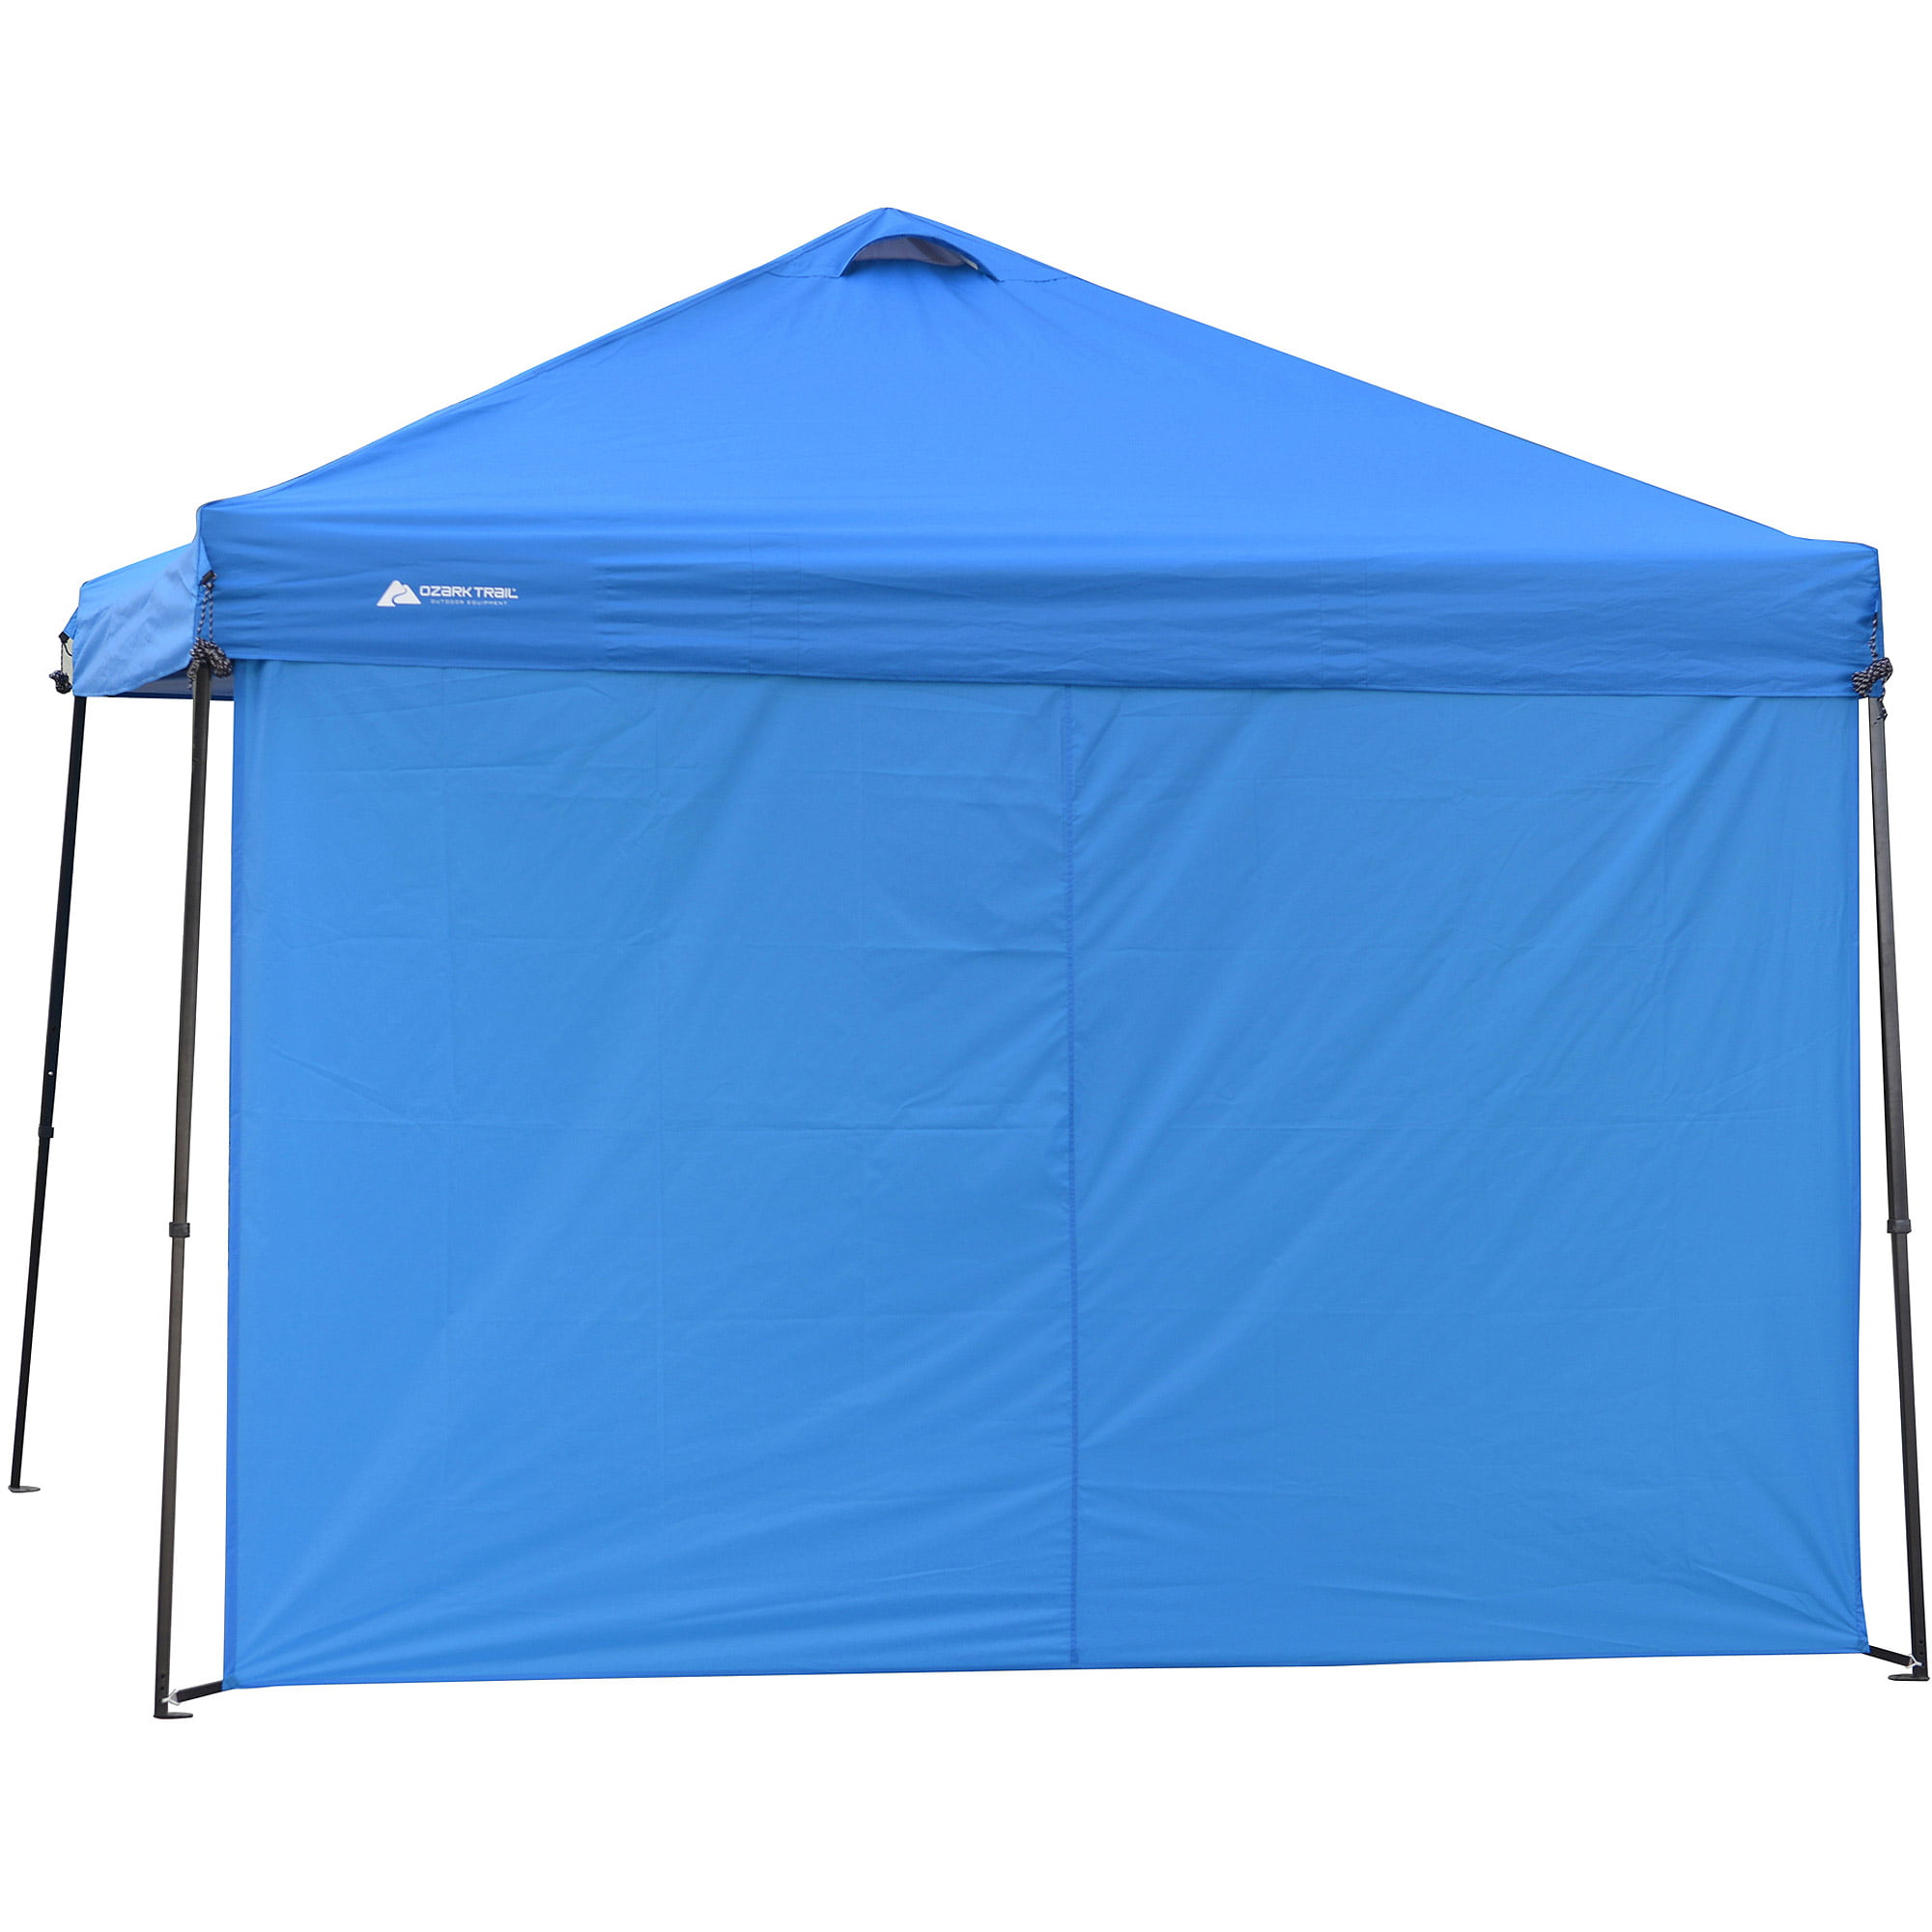 Ozark Trail Sun Wall for 10u0027 x 10u0027 Straight Leg Canopy / Gazebo - Walmart .com  sc 1 st  Walmart & Ozark Trail Sun Wall for 10u0027 x 10u0027 Straight Leg Canopy / Gazebo ...